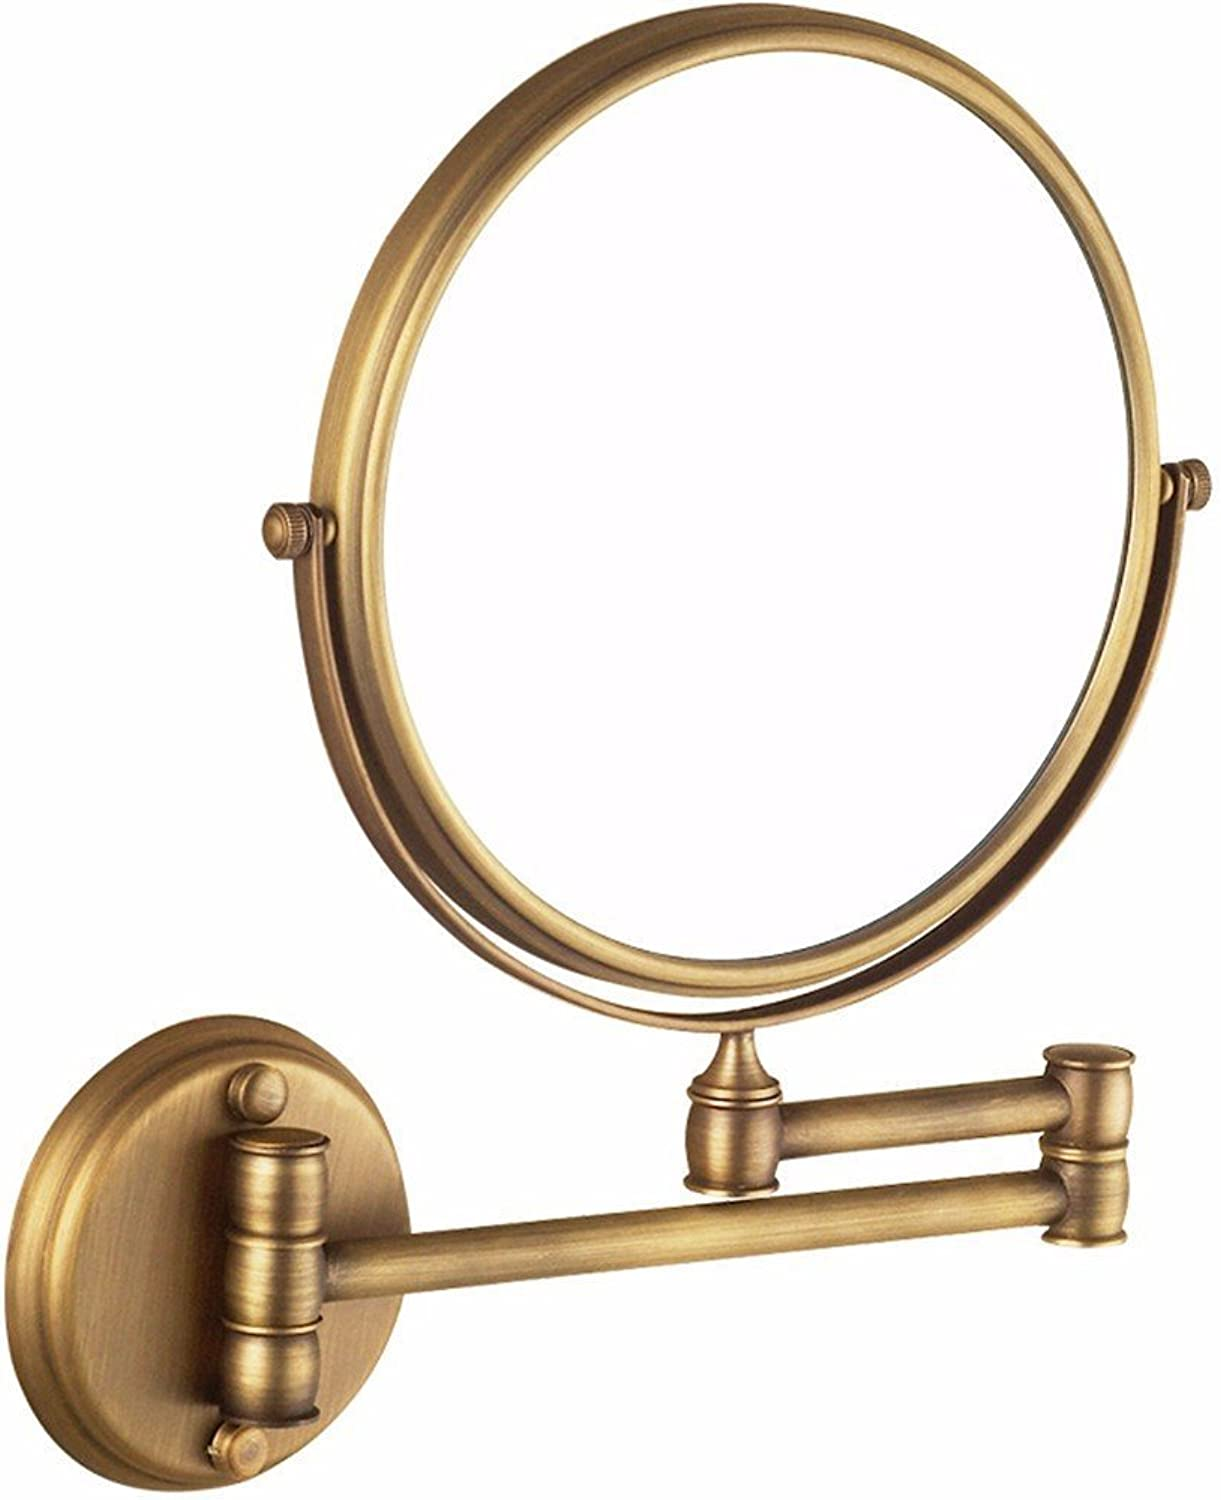 Antique mirror brass bathroom wall mounted redating mirror folding mirror bathroom scale on both sides of the mirror-8 inch Antique mirror